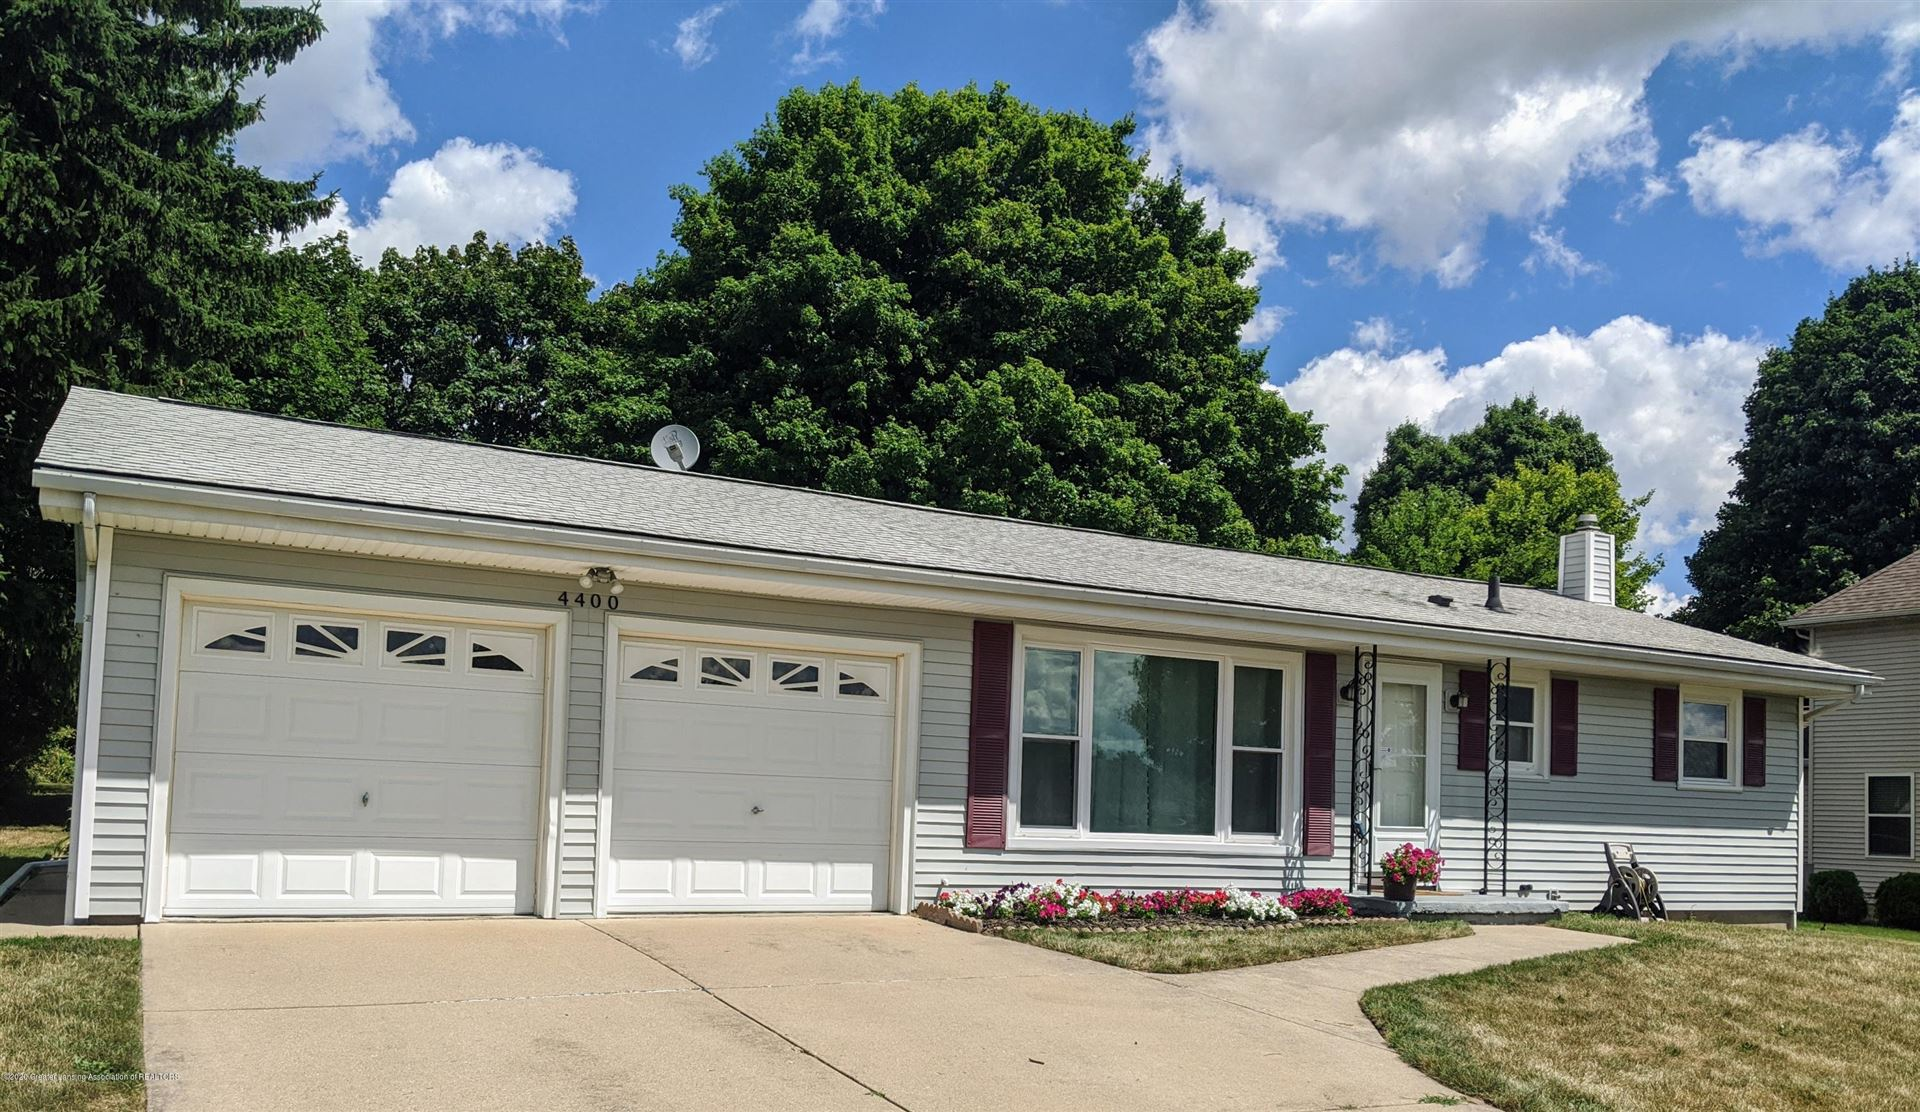 4400 Dell Road Lansing Mi 48911 Mls 248219 Howard Hanna